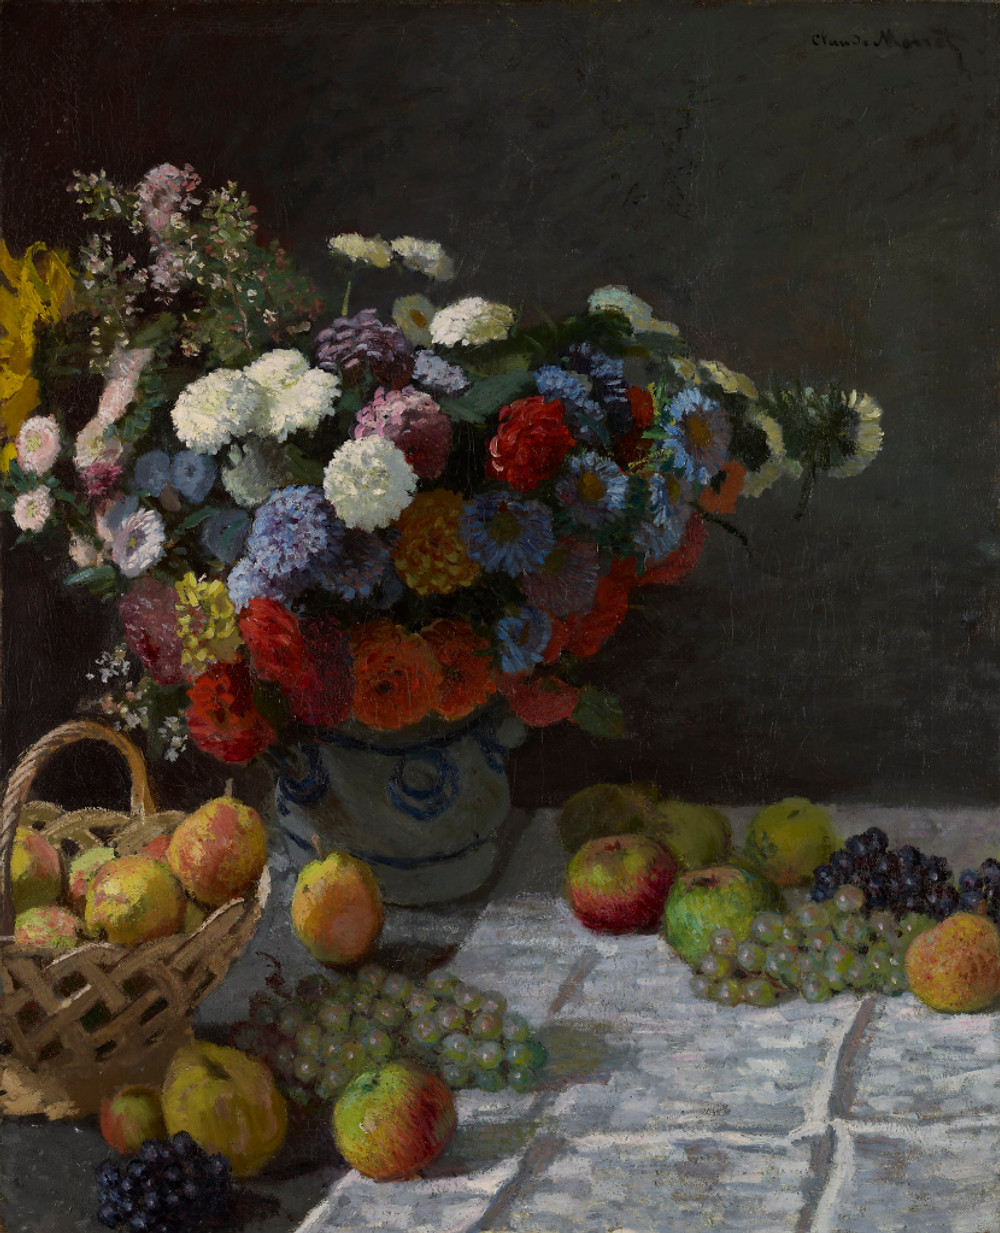 Claude Monet, Still Life with Flowers and Fruit